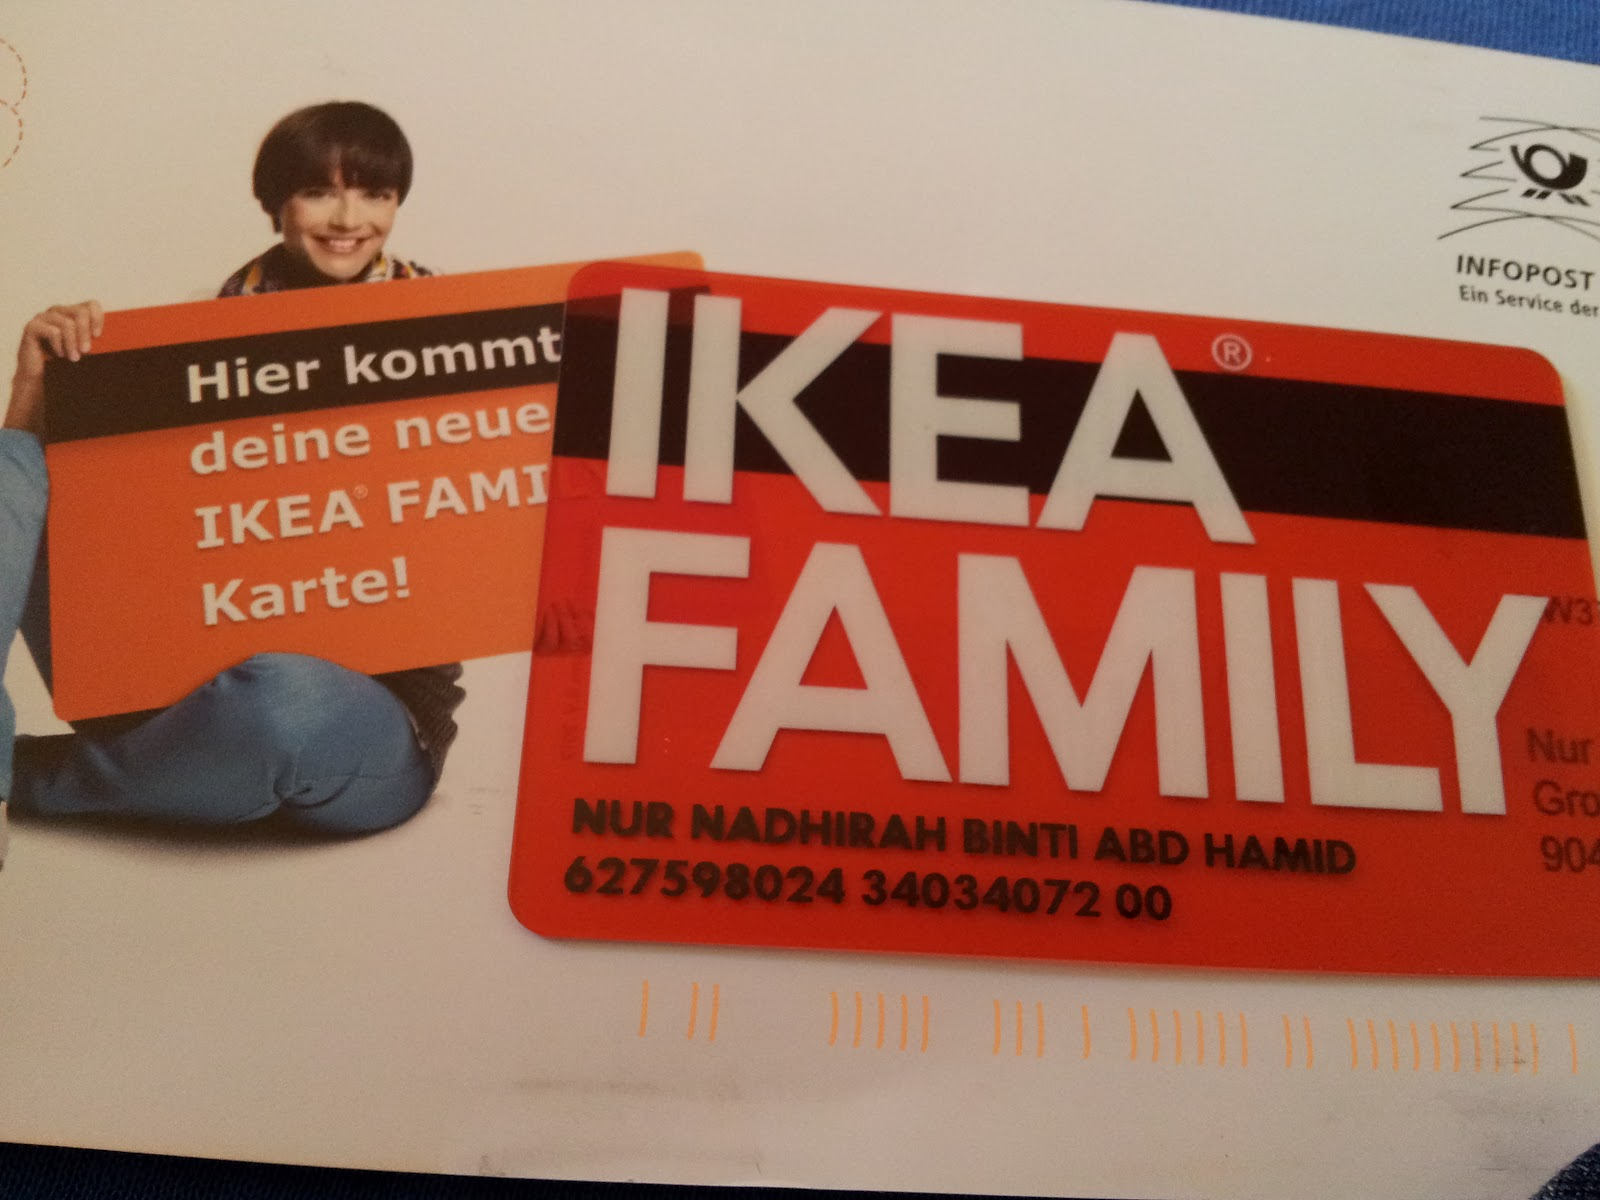 The Me Stories Ikea Family